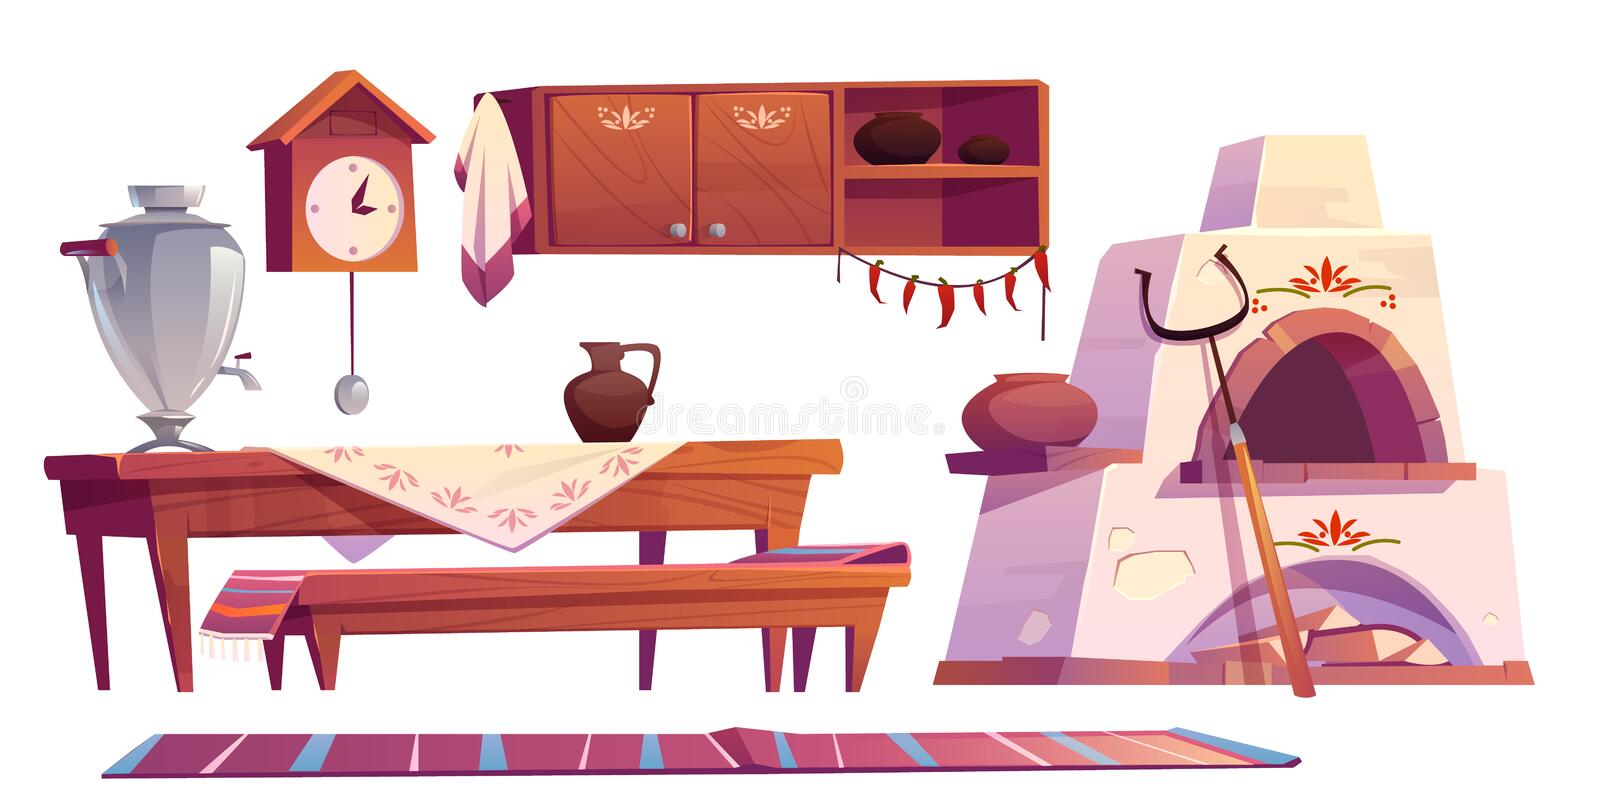 Old russian interior for kitchen traditional stove. Old russian interior for kitchen. Traditional stove, wooden table, bench, cuckoo-clock, samovar, grip, shelf stock illustration